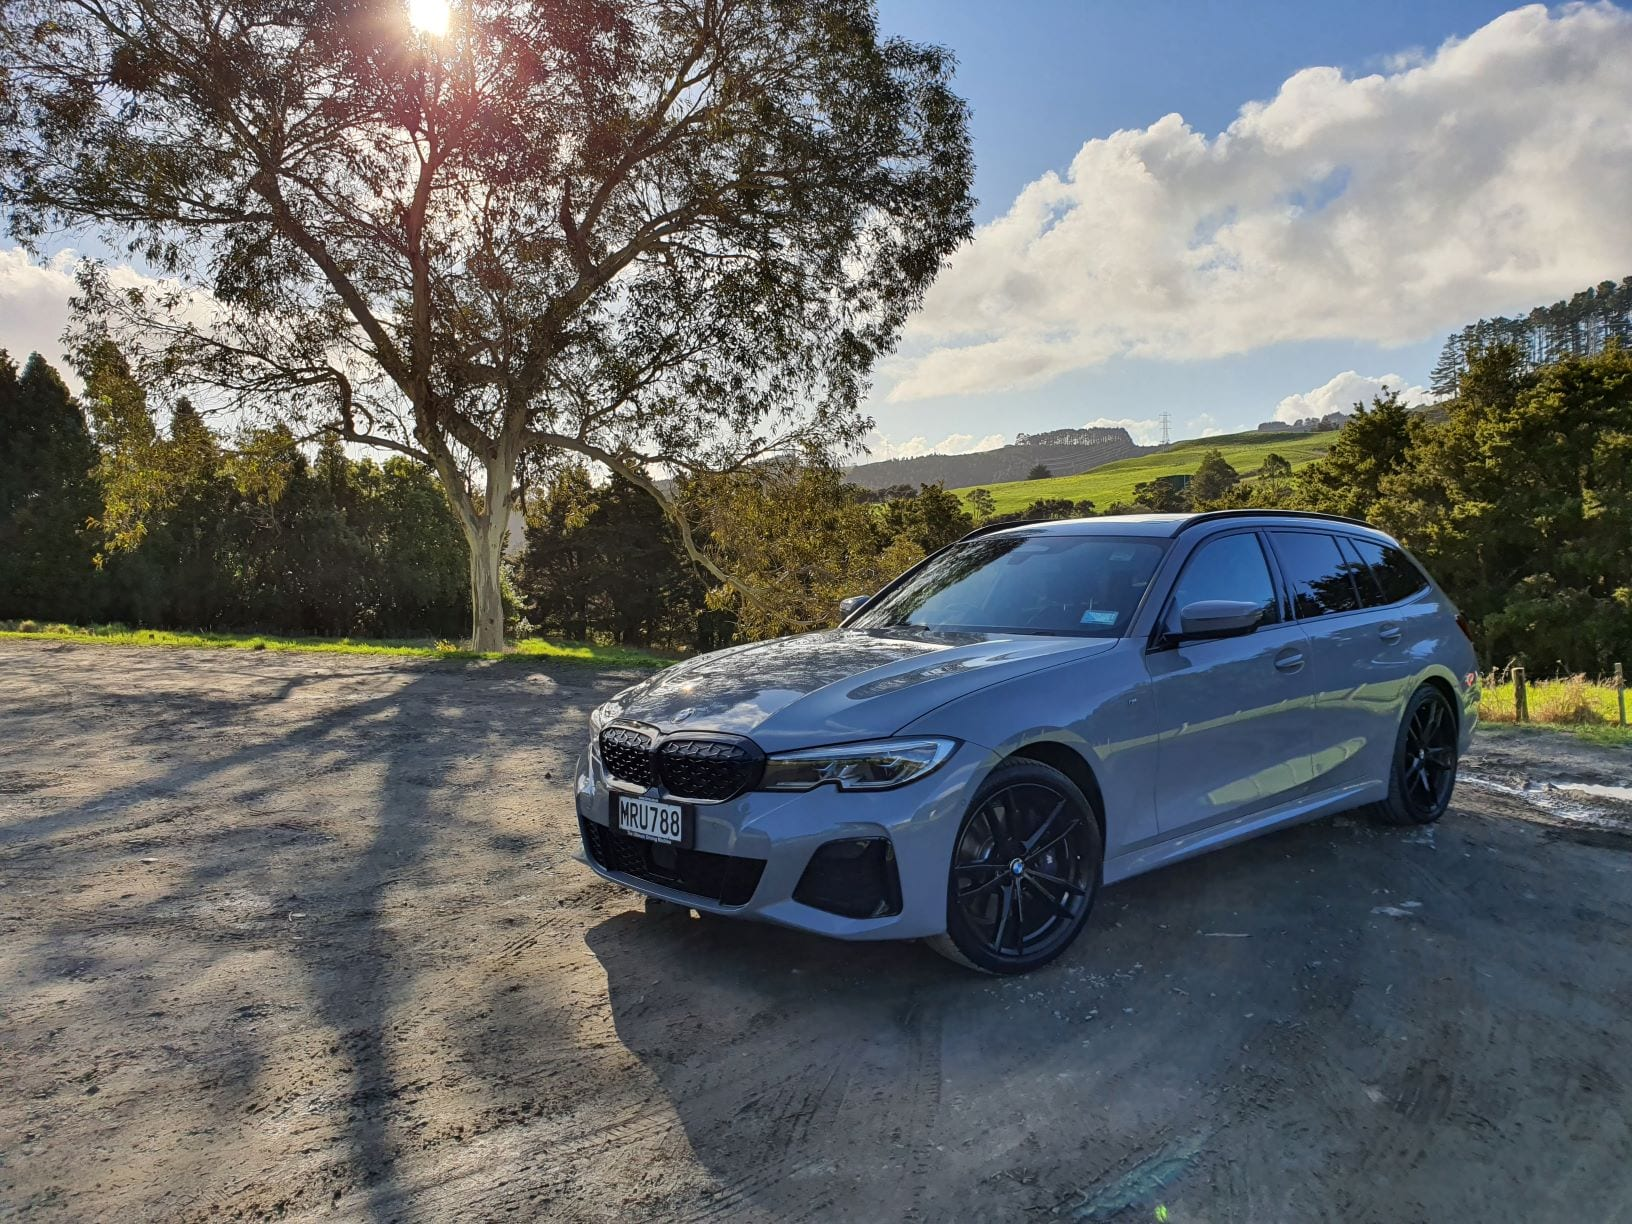 The M340i Touring pictured by a tree